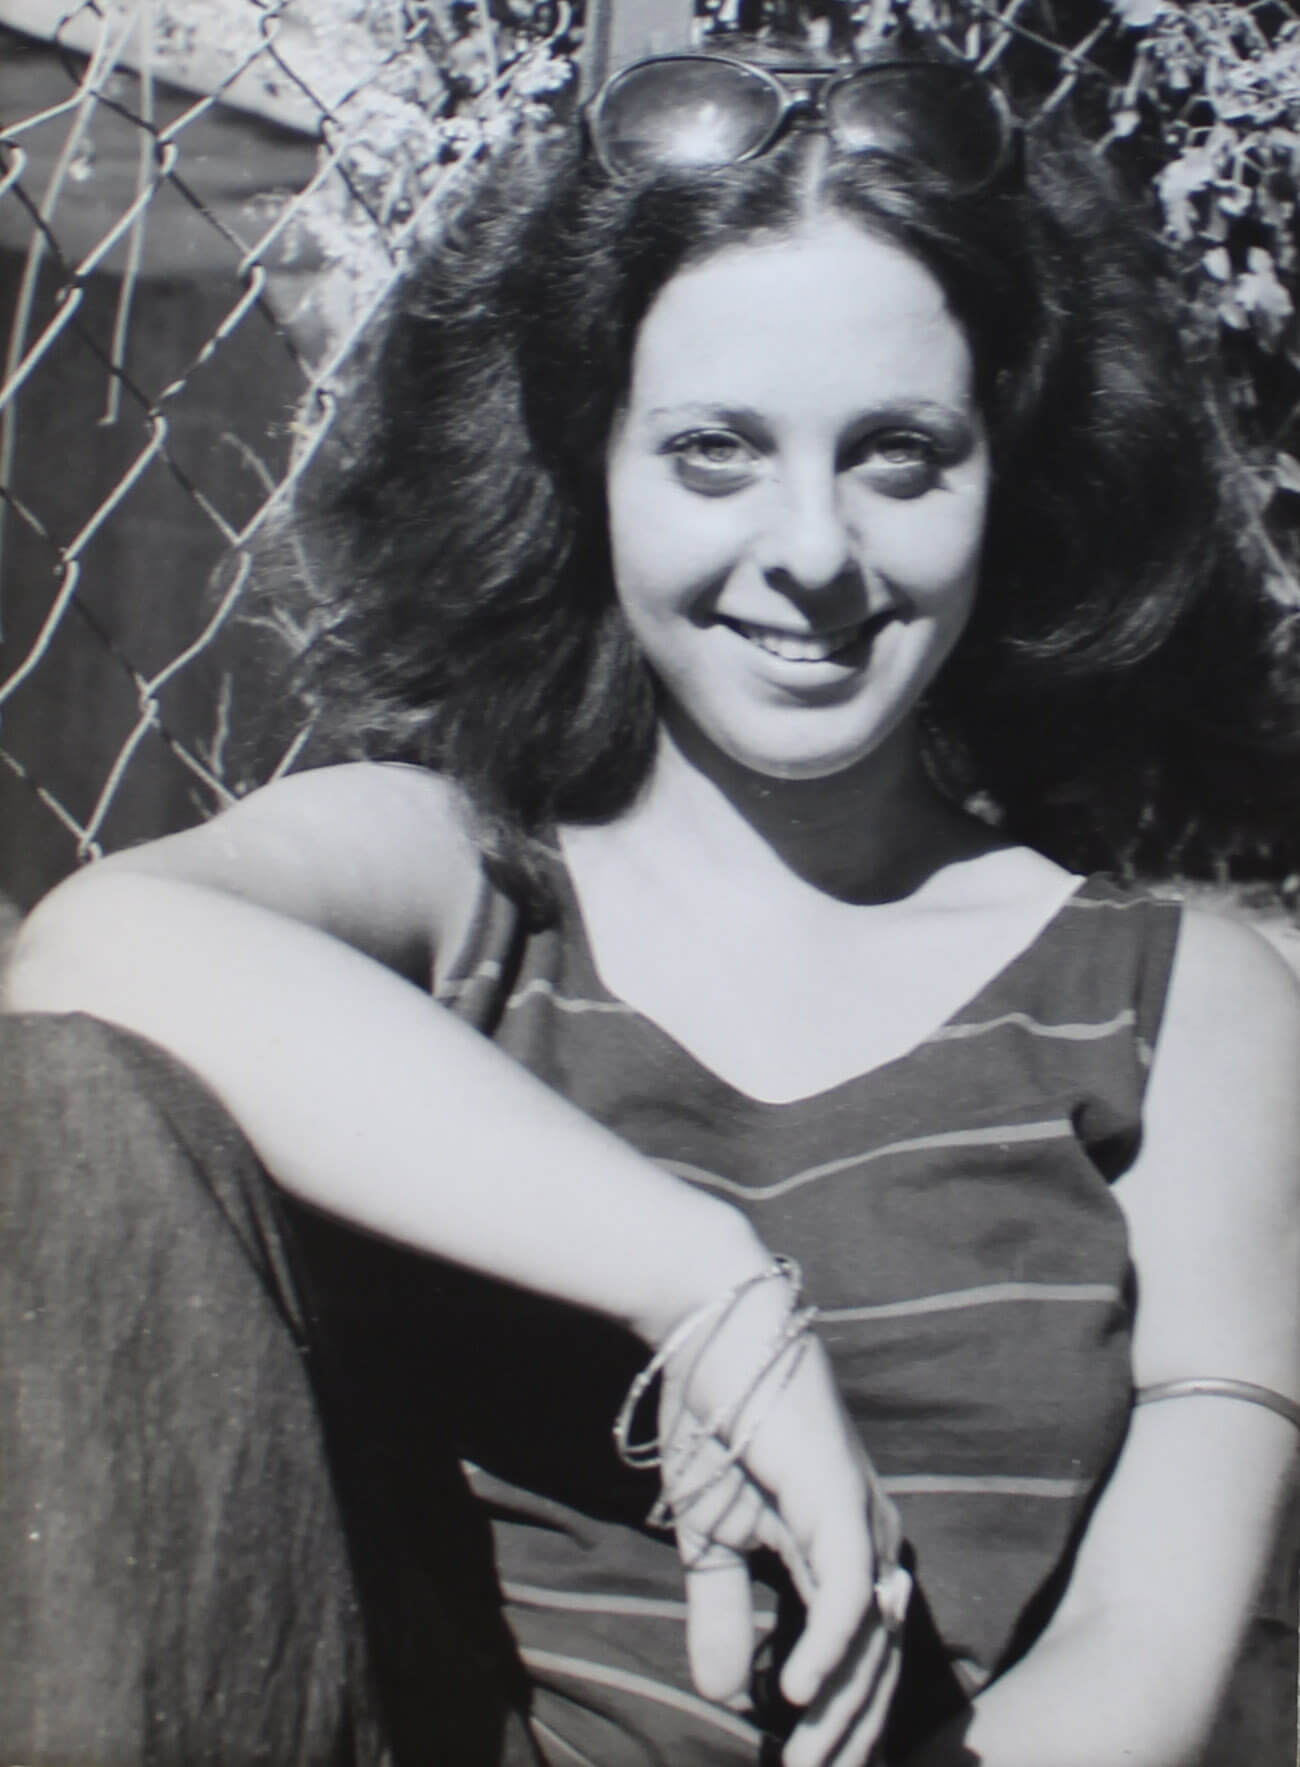 Photo of a young woman casually sitting against a chain-link fence in the summer.